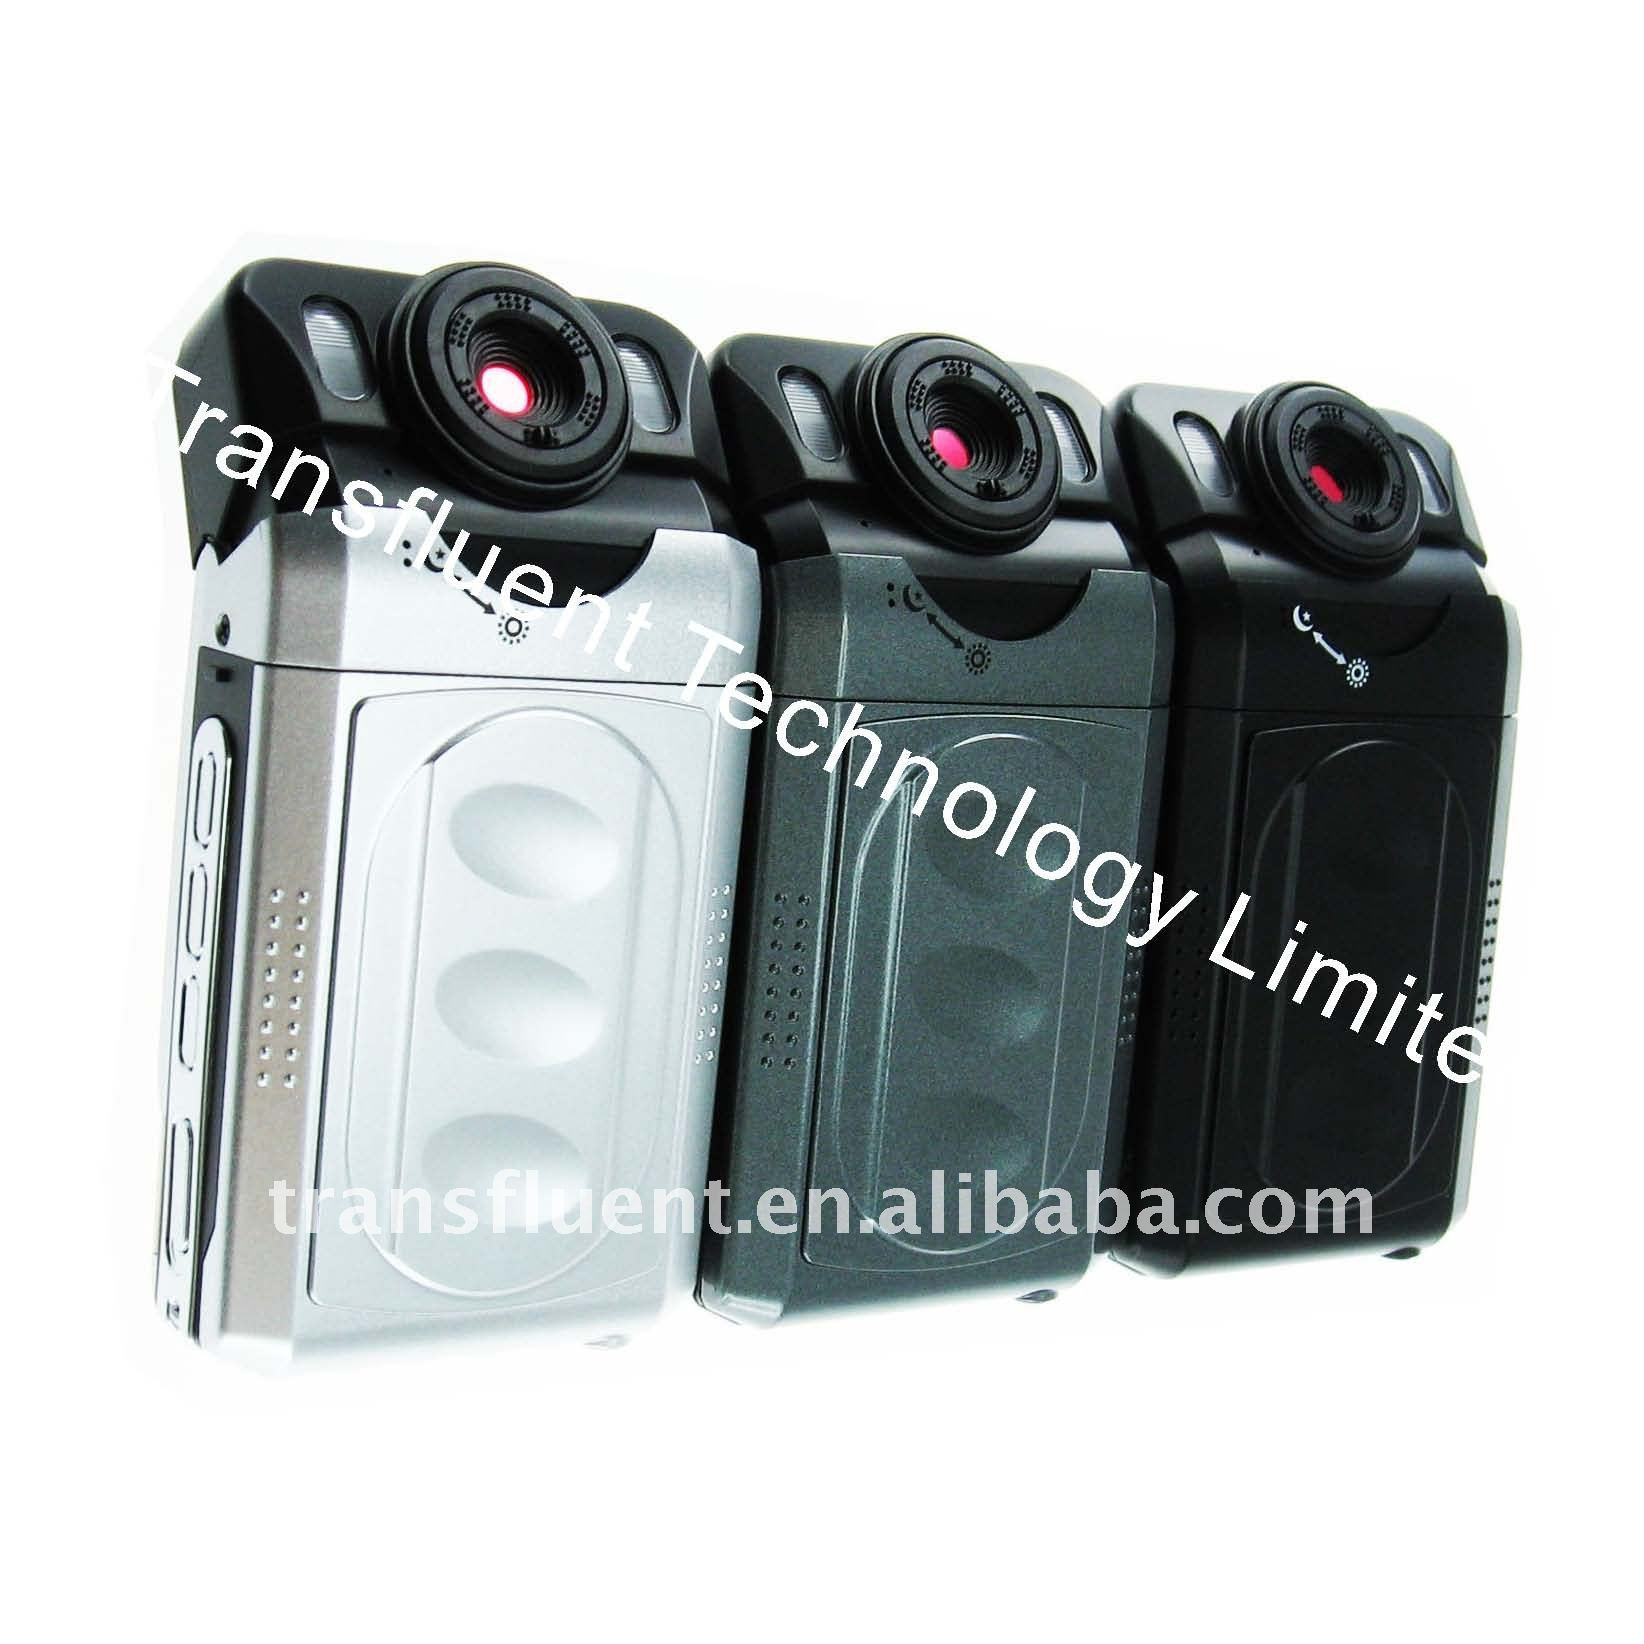 HOT!!! Full HD1080p digital video camcorder with 120 Degree and H.264